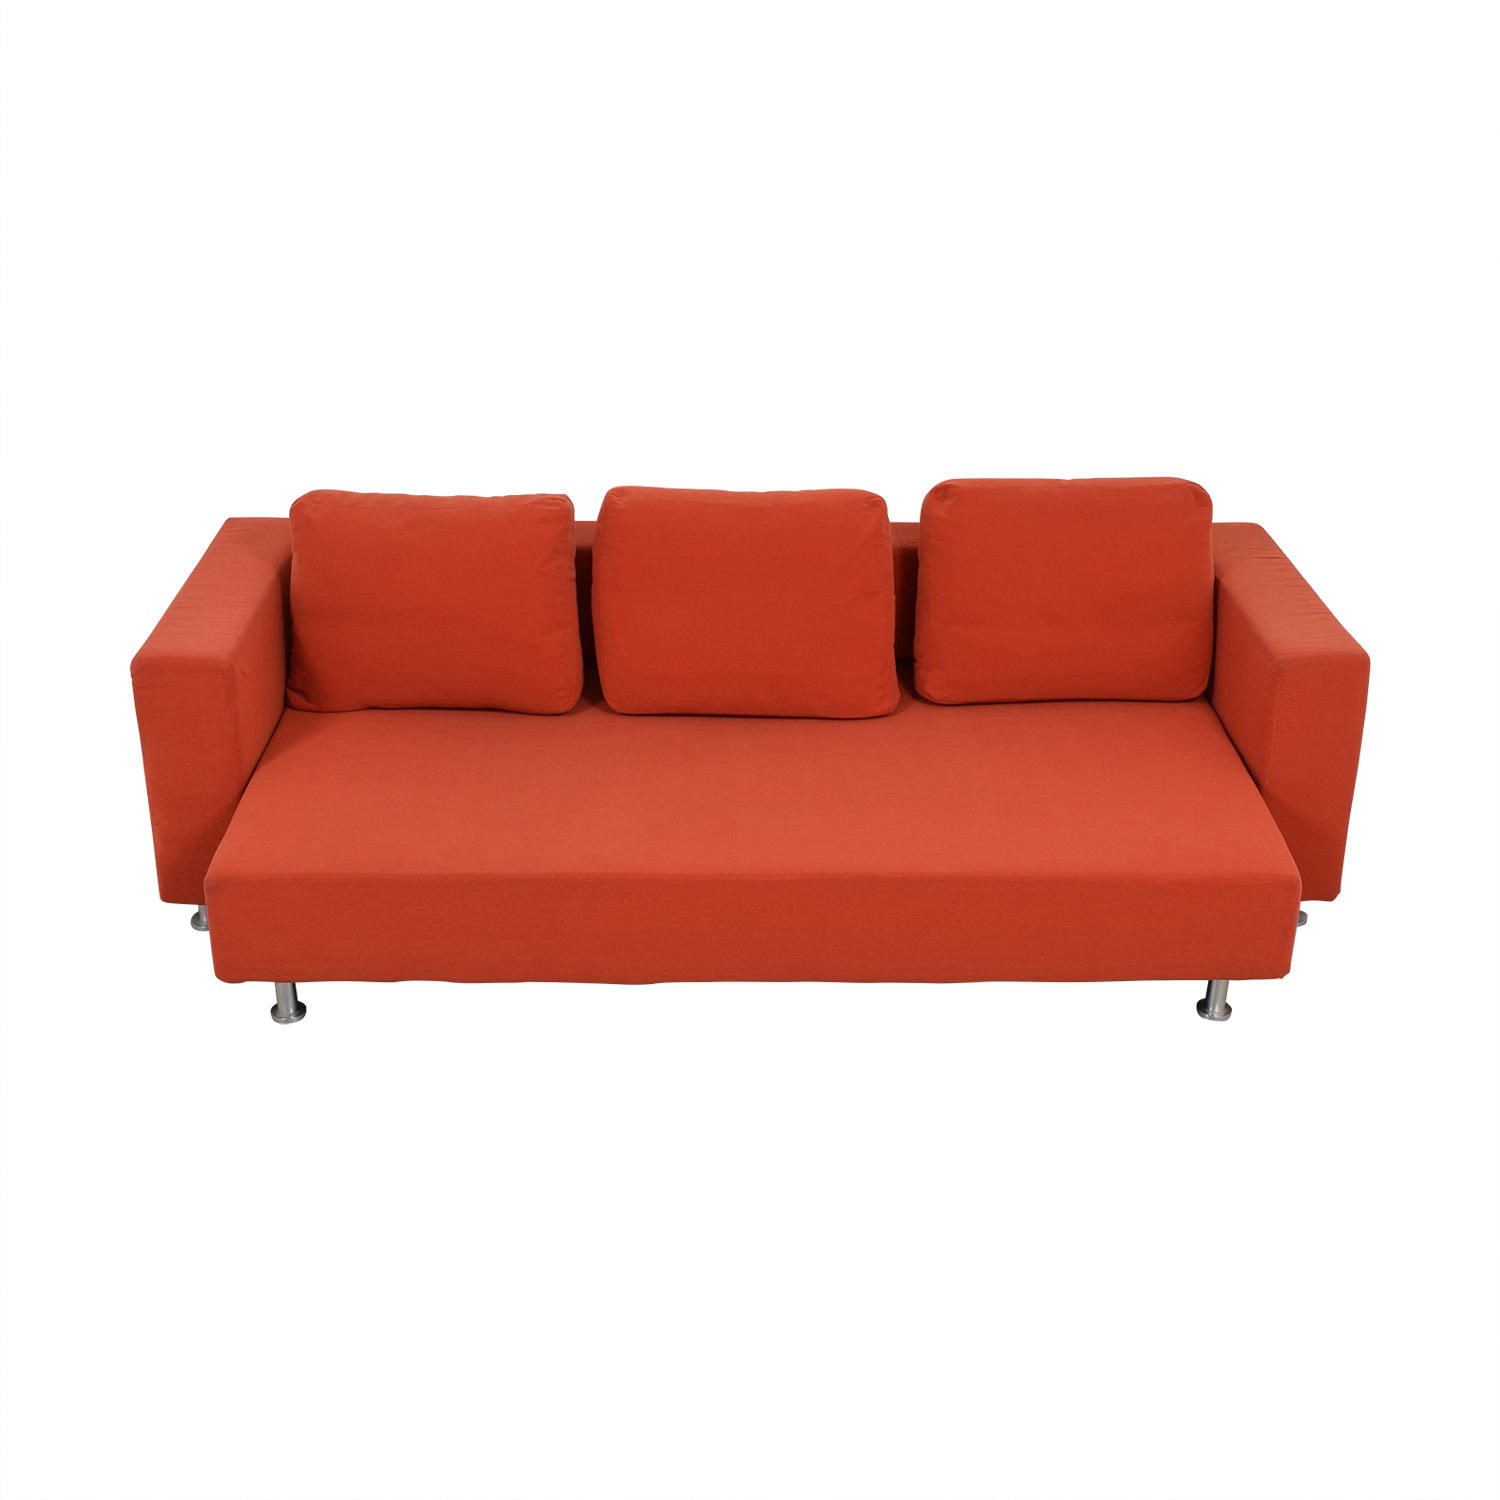 Ligne Roset Ligne Roset Orange Sleeper Sofa dimensions